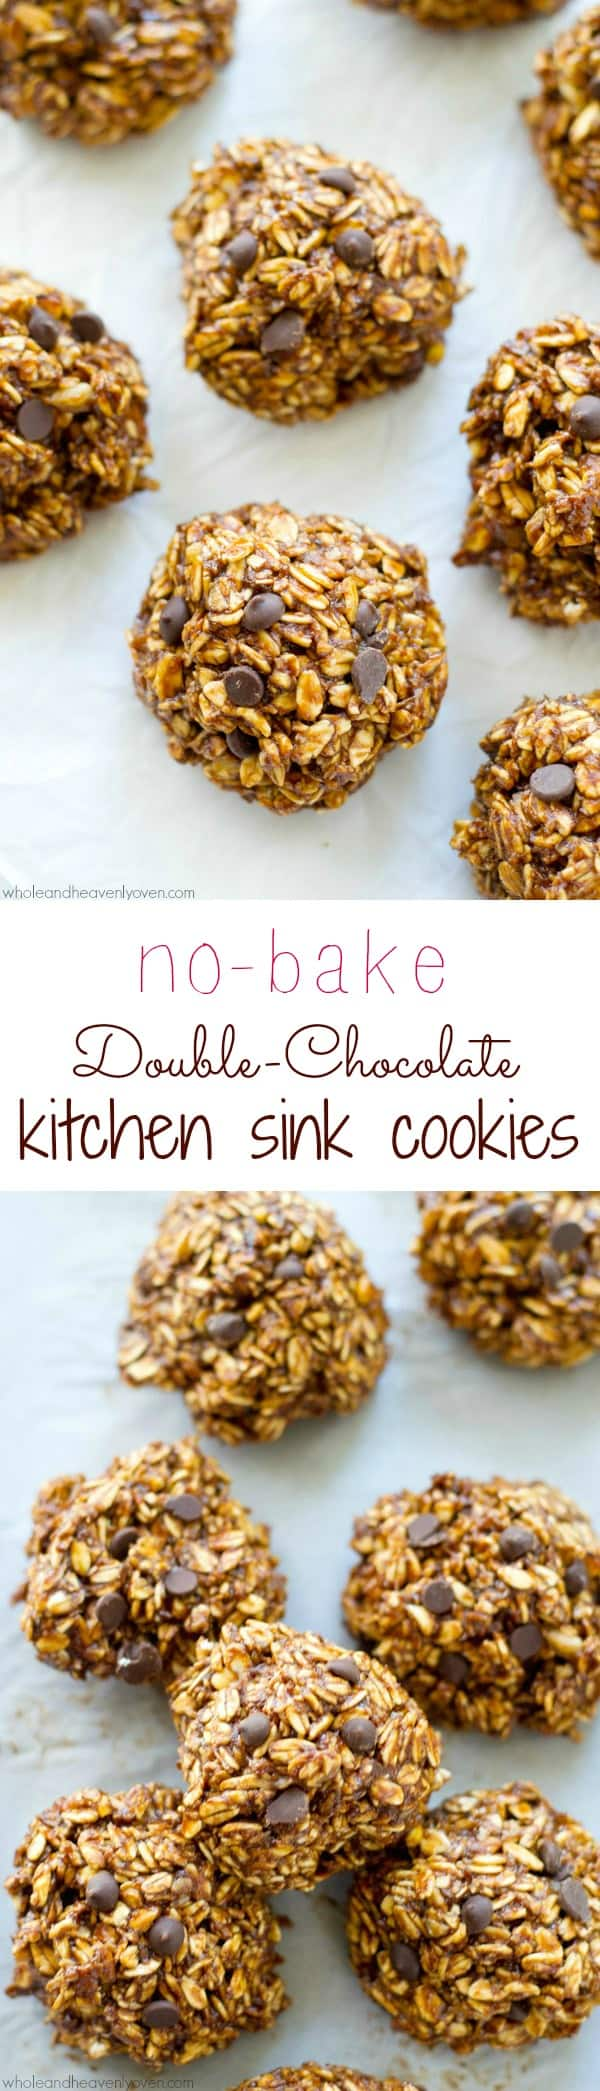 Craving something sweet but don't feel like turning on the oven? These addicting no-bake cookies are loaded with a double-delight of chocolate and just about everything else! @WholeHeavenly